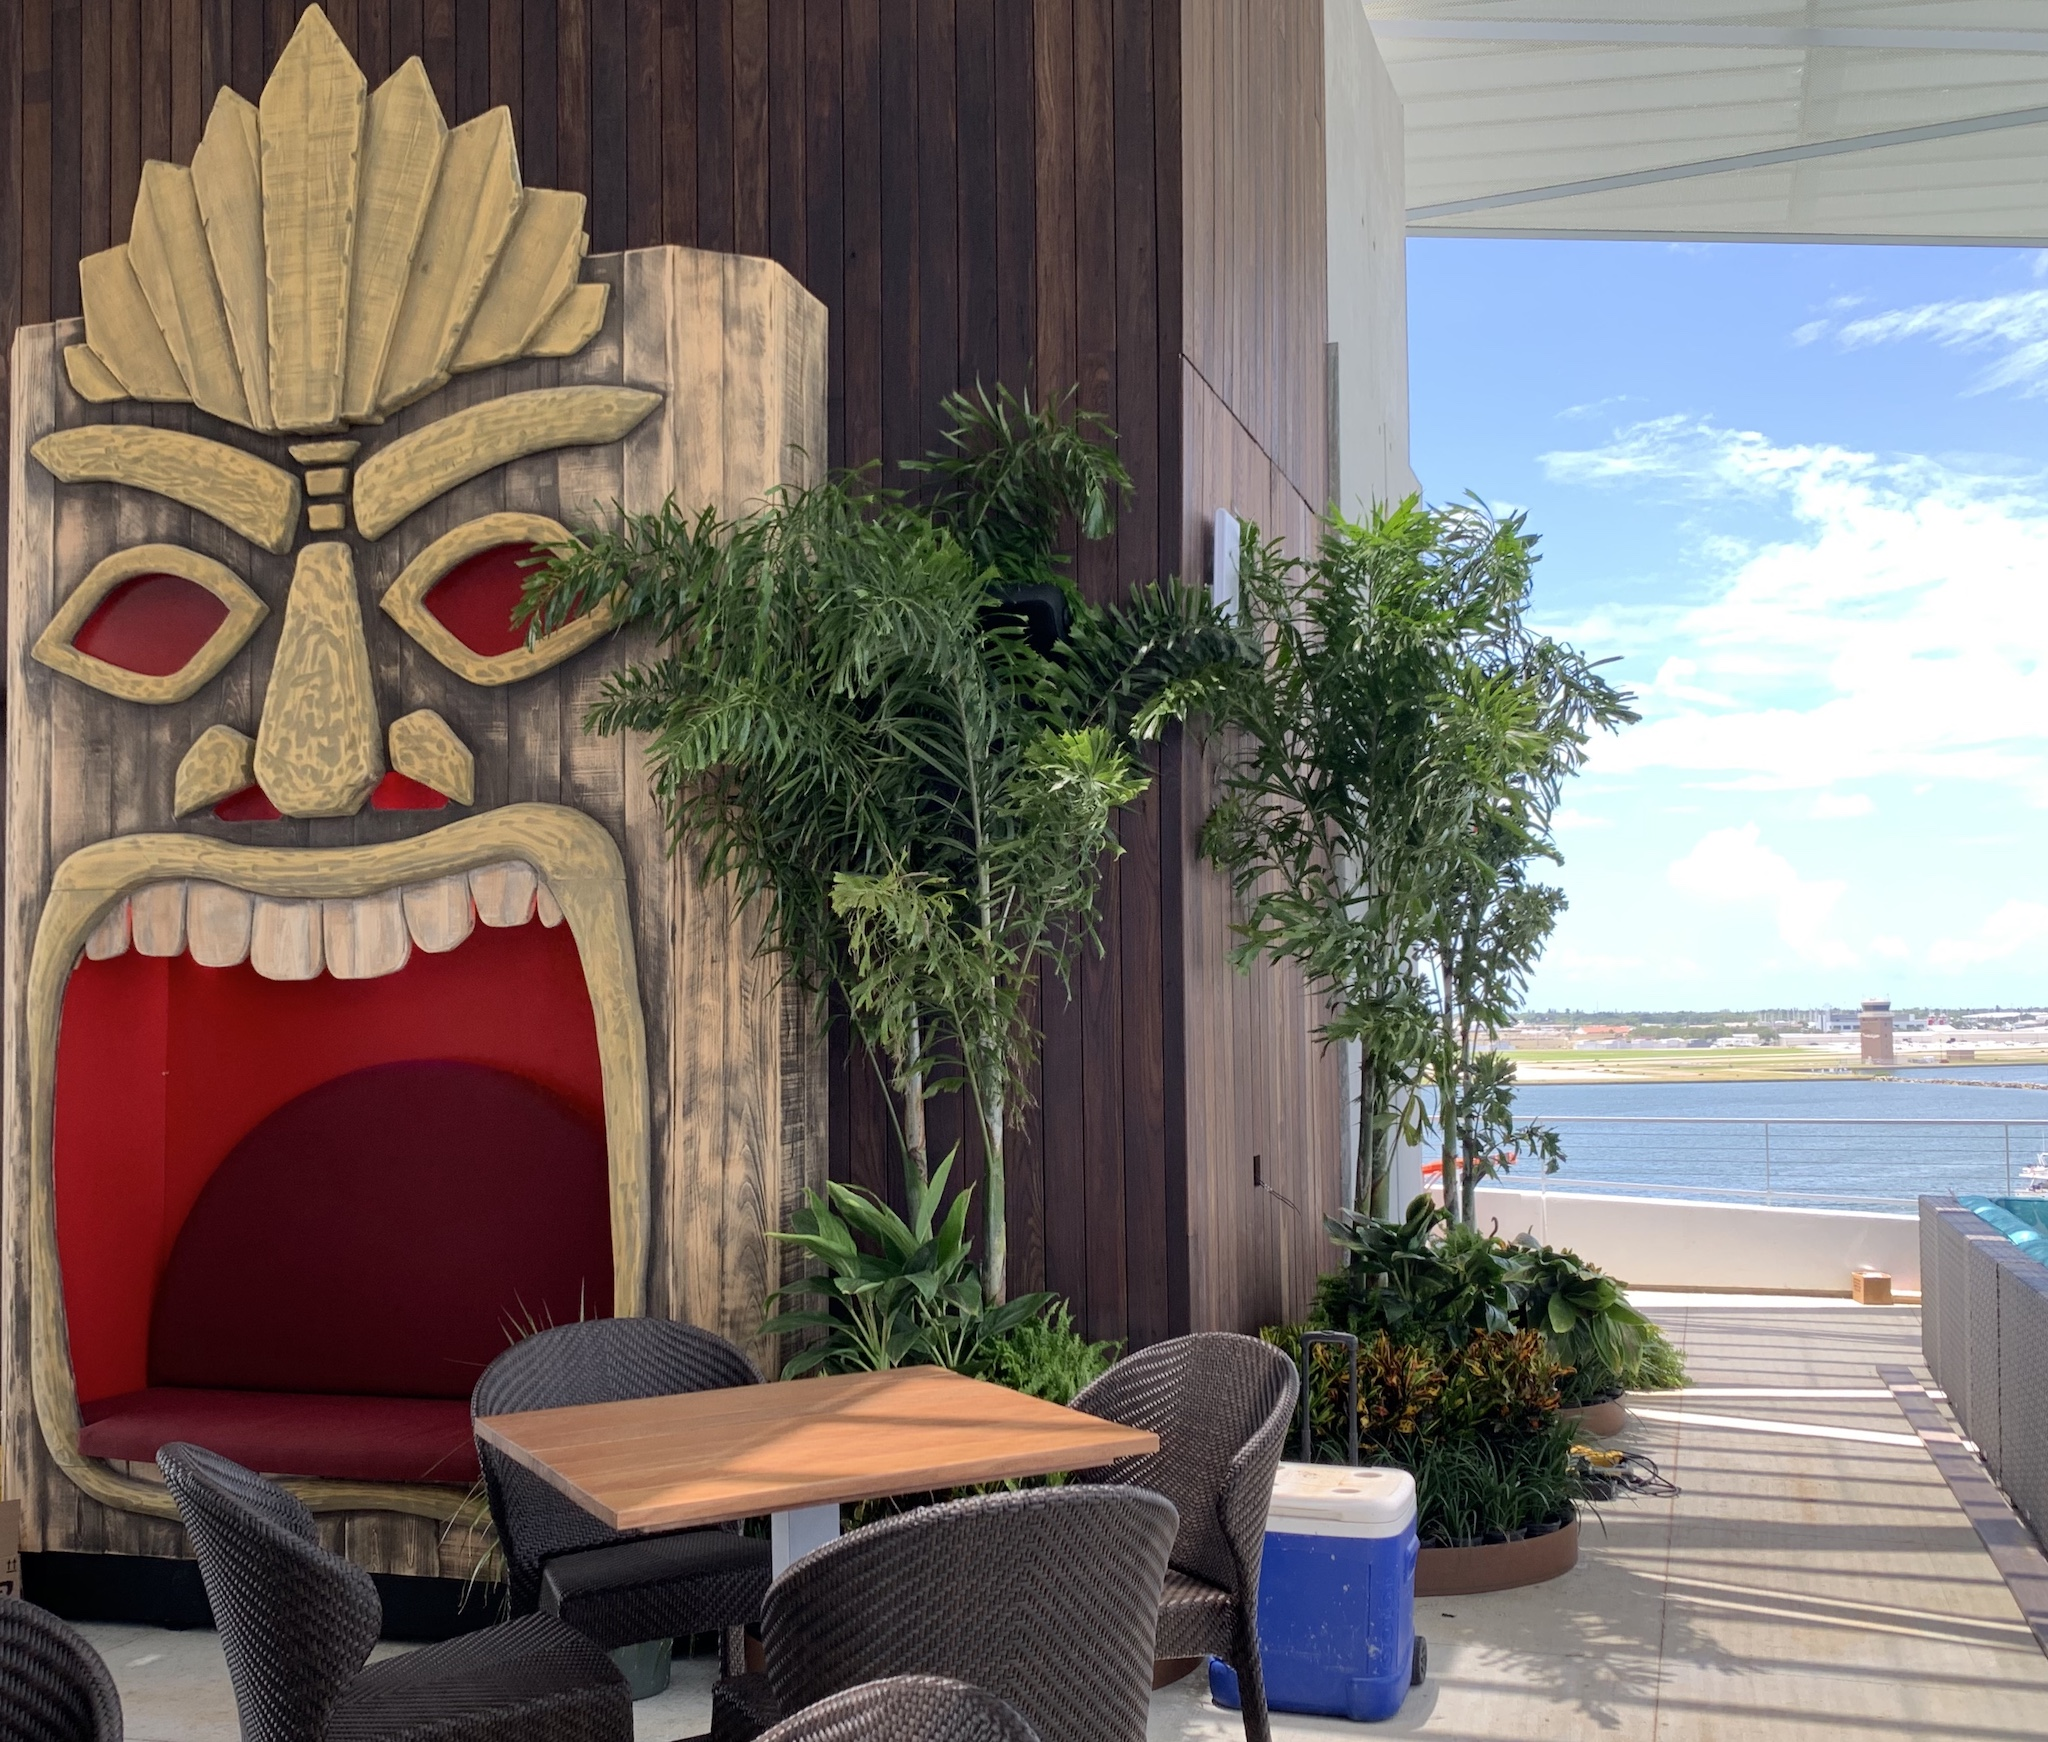 Upstairs at Pier Teaki rooftop bar - working to get it all ready.